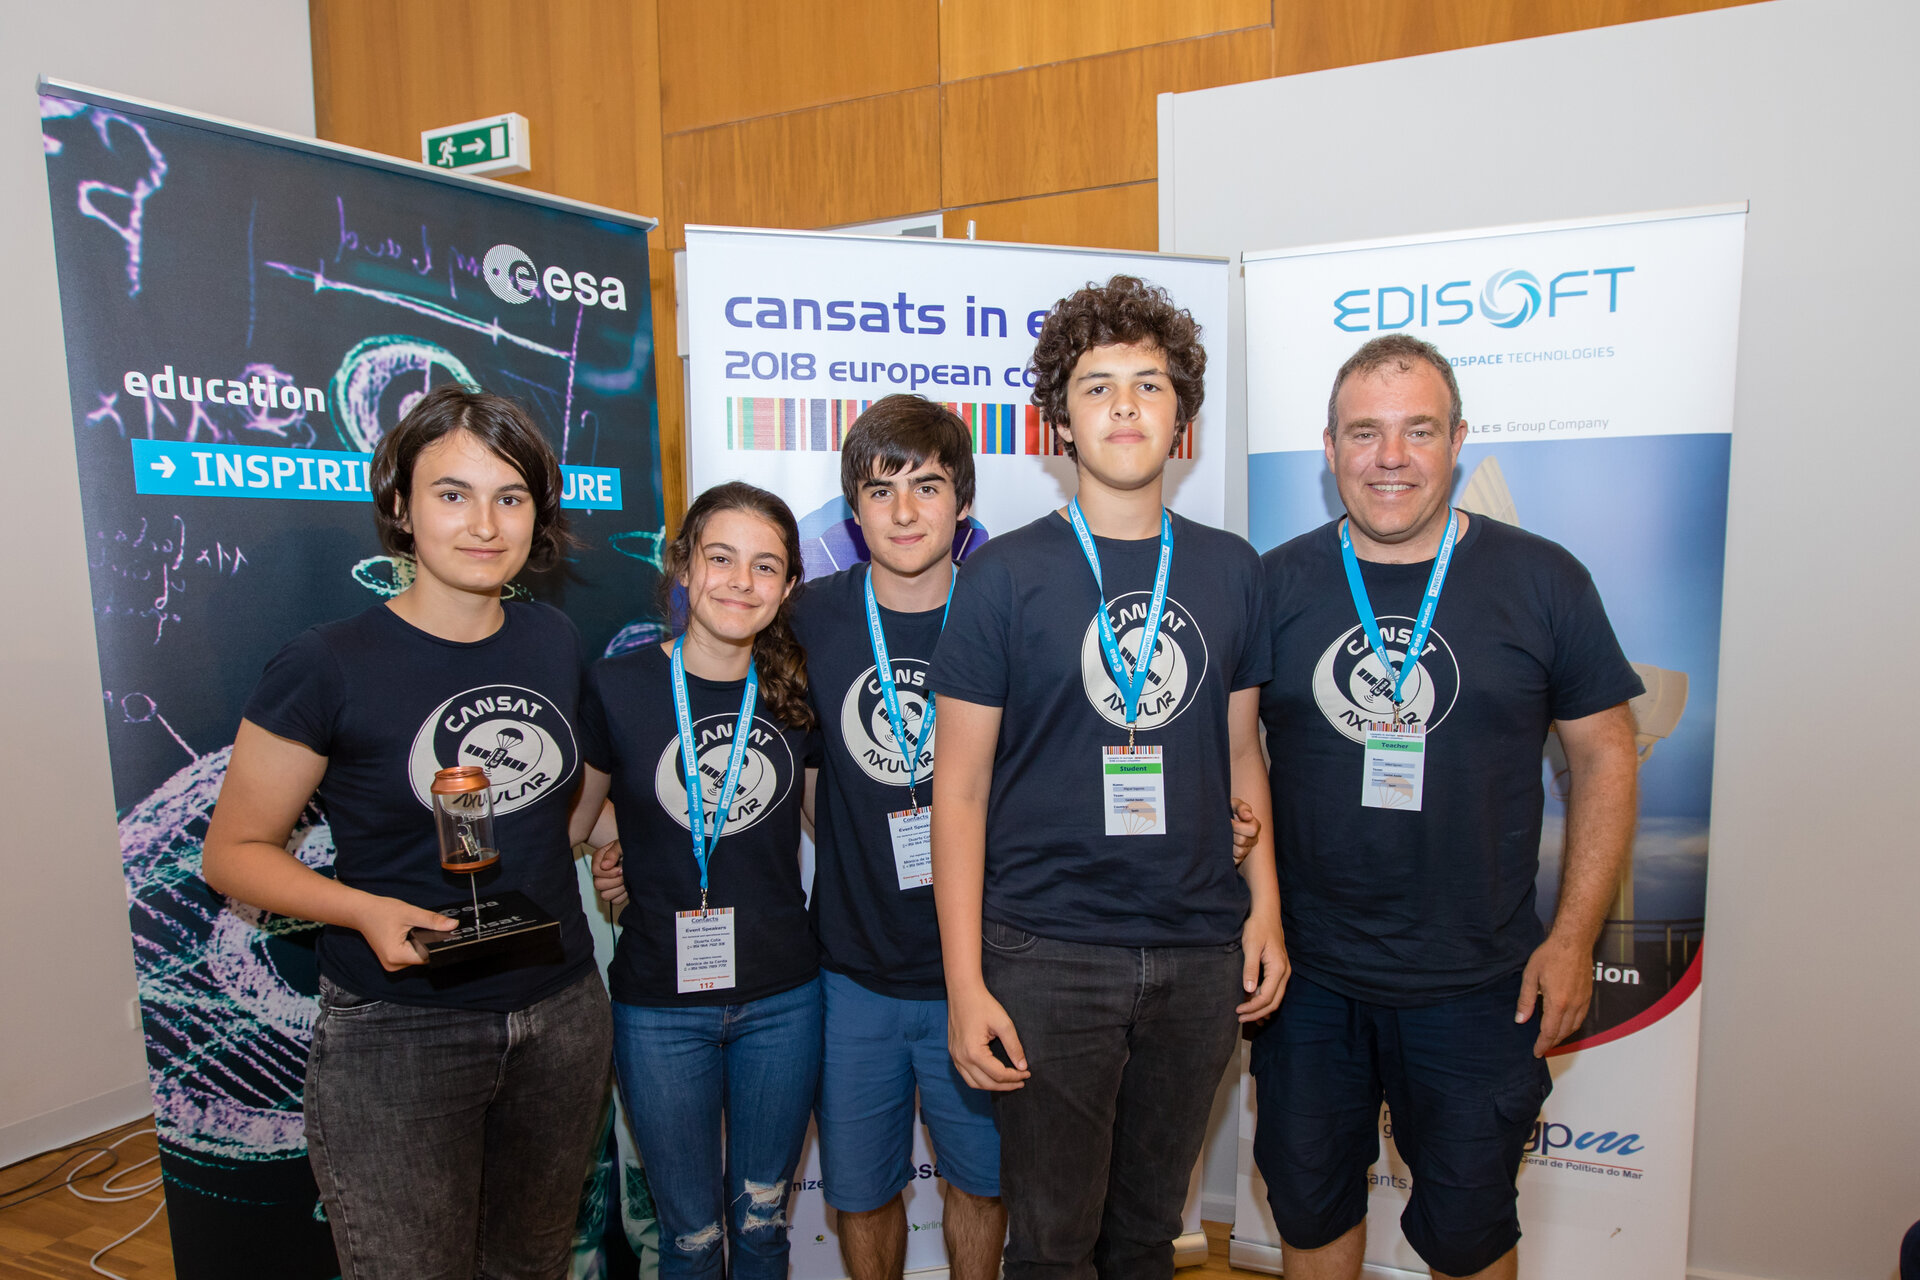 3rd prize: Team CanSat Axular from Axular Lizeoa, Spain